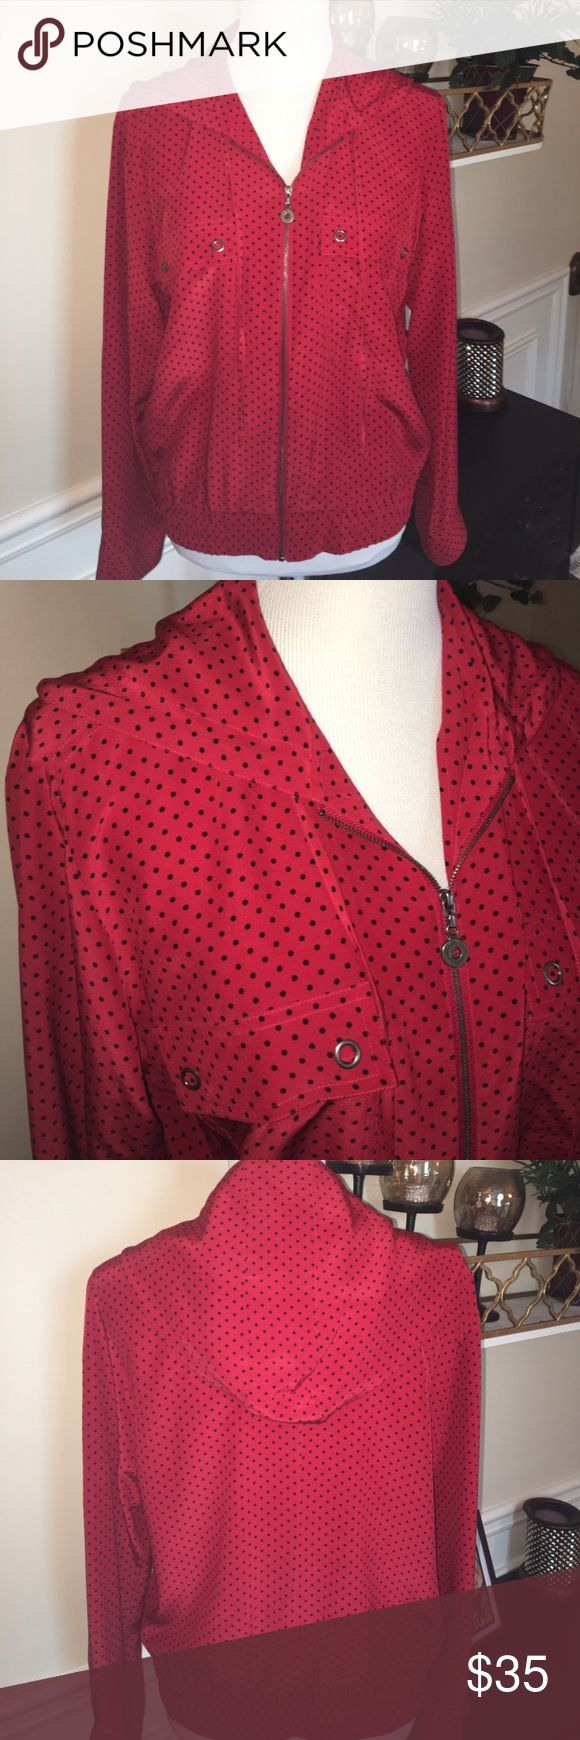 Chico's Design silk zip up hoodie sz 1 🌸 Chico's red and black polka dot zip hoodie. Front pockets with cute snaps.  Excellent condition never worn Chico's sz 1  fits 6/8 Chico's Jackets & Coats